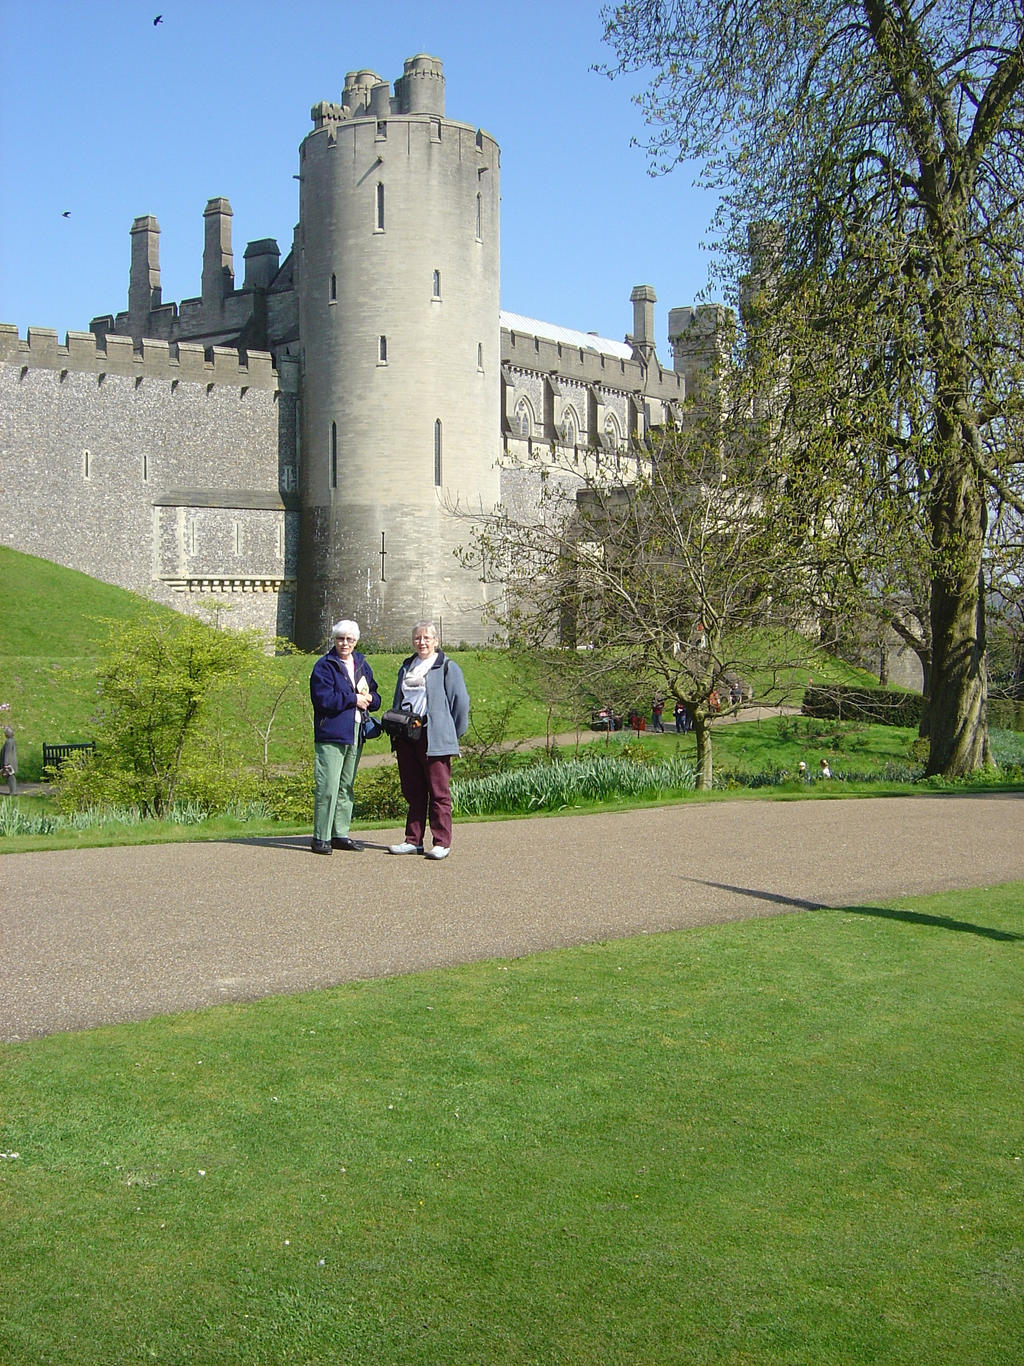 DSC00302  Arundel Castle by VIRGOLINEDANCER1